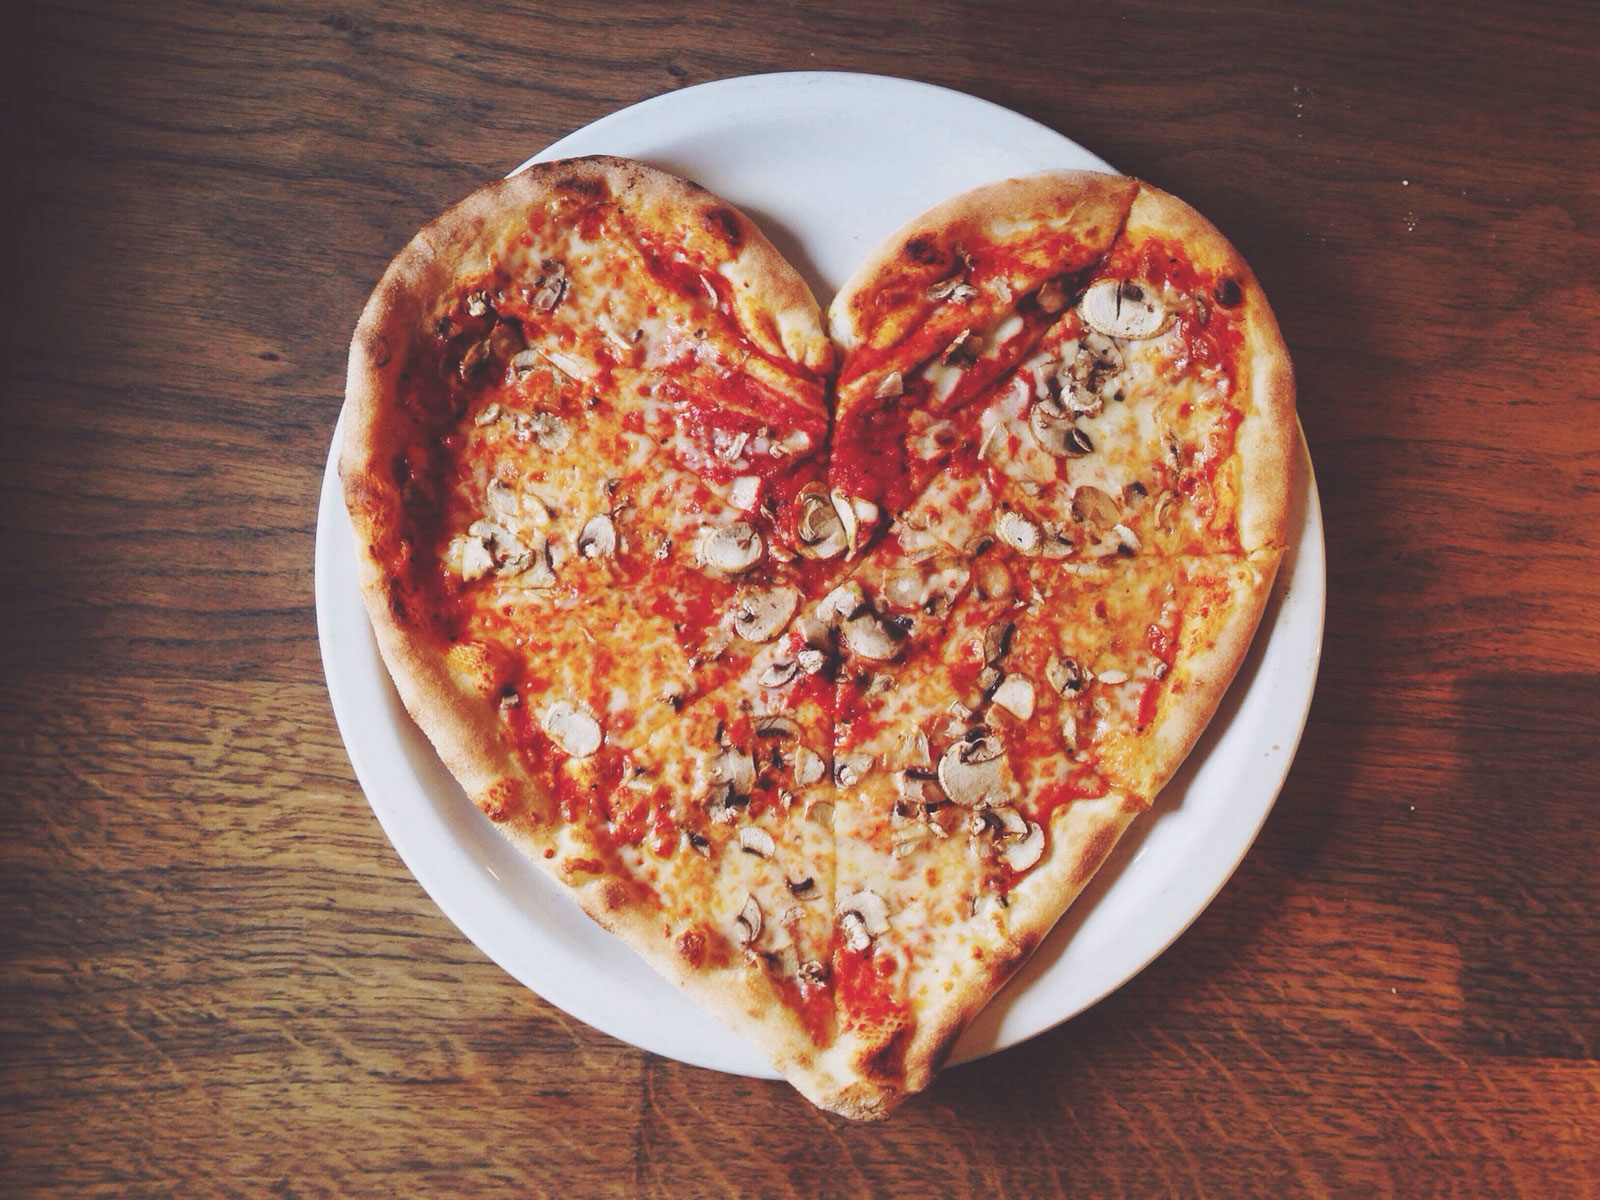 You Probably Mention One of These Two Foods in Your Dating Profile